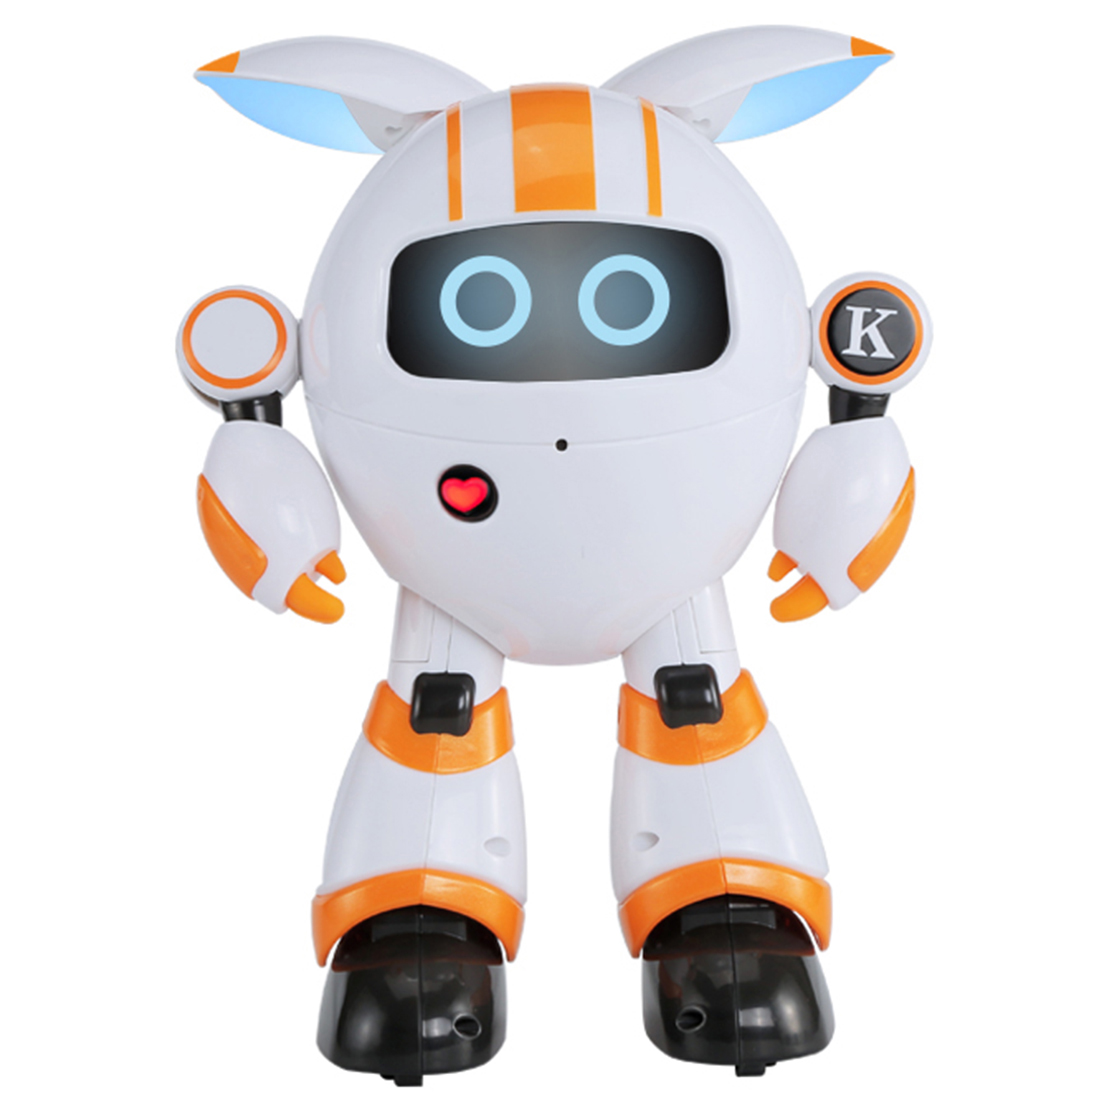 Smart Walking Robot RC Electronic Dancing Singing Robot Toy For Children Robot Toys For Kids Boys Birthday Gift   Blue New|  - title=